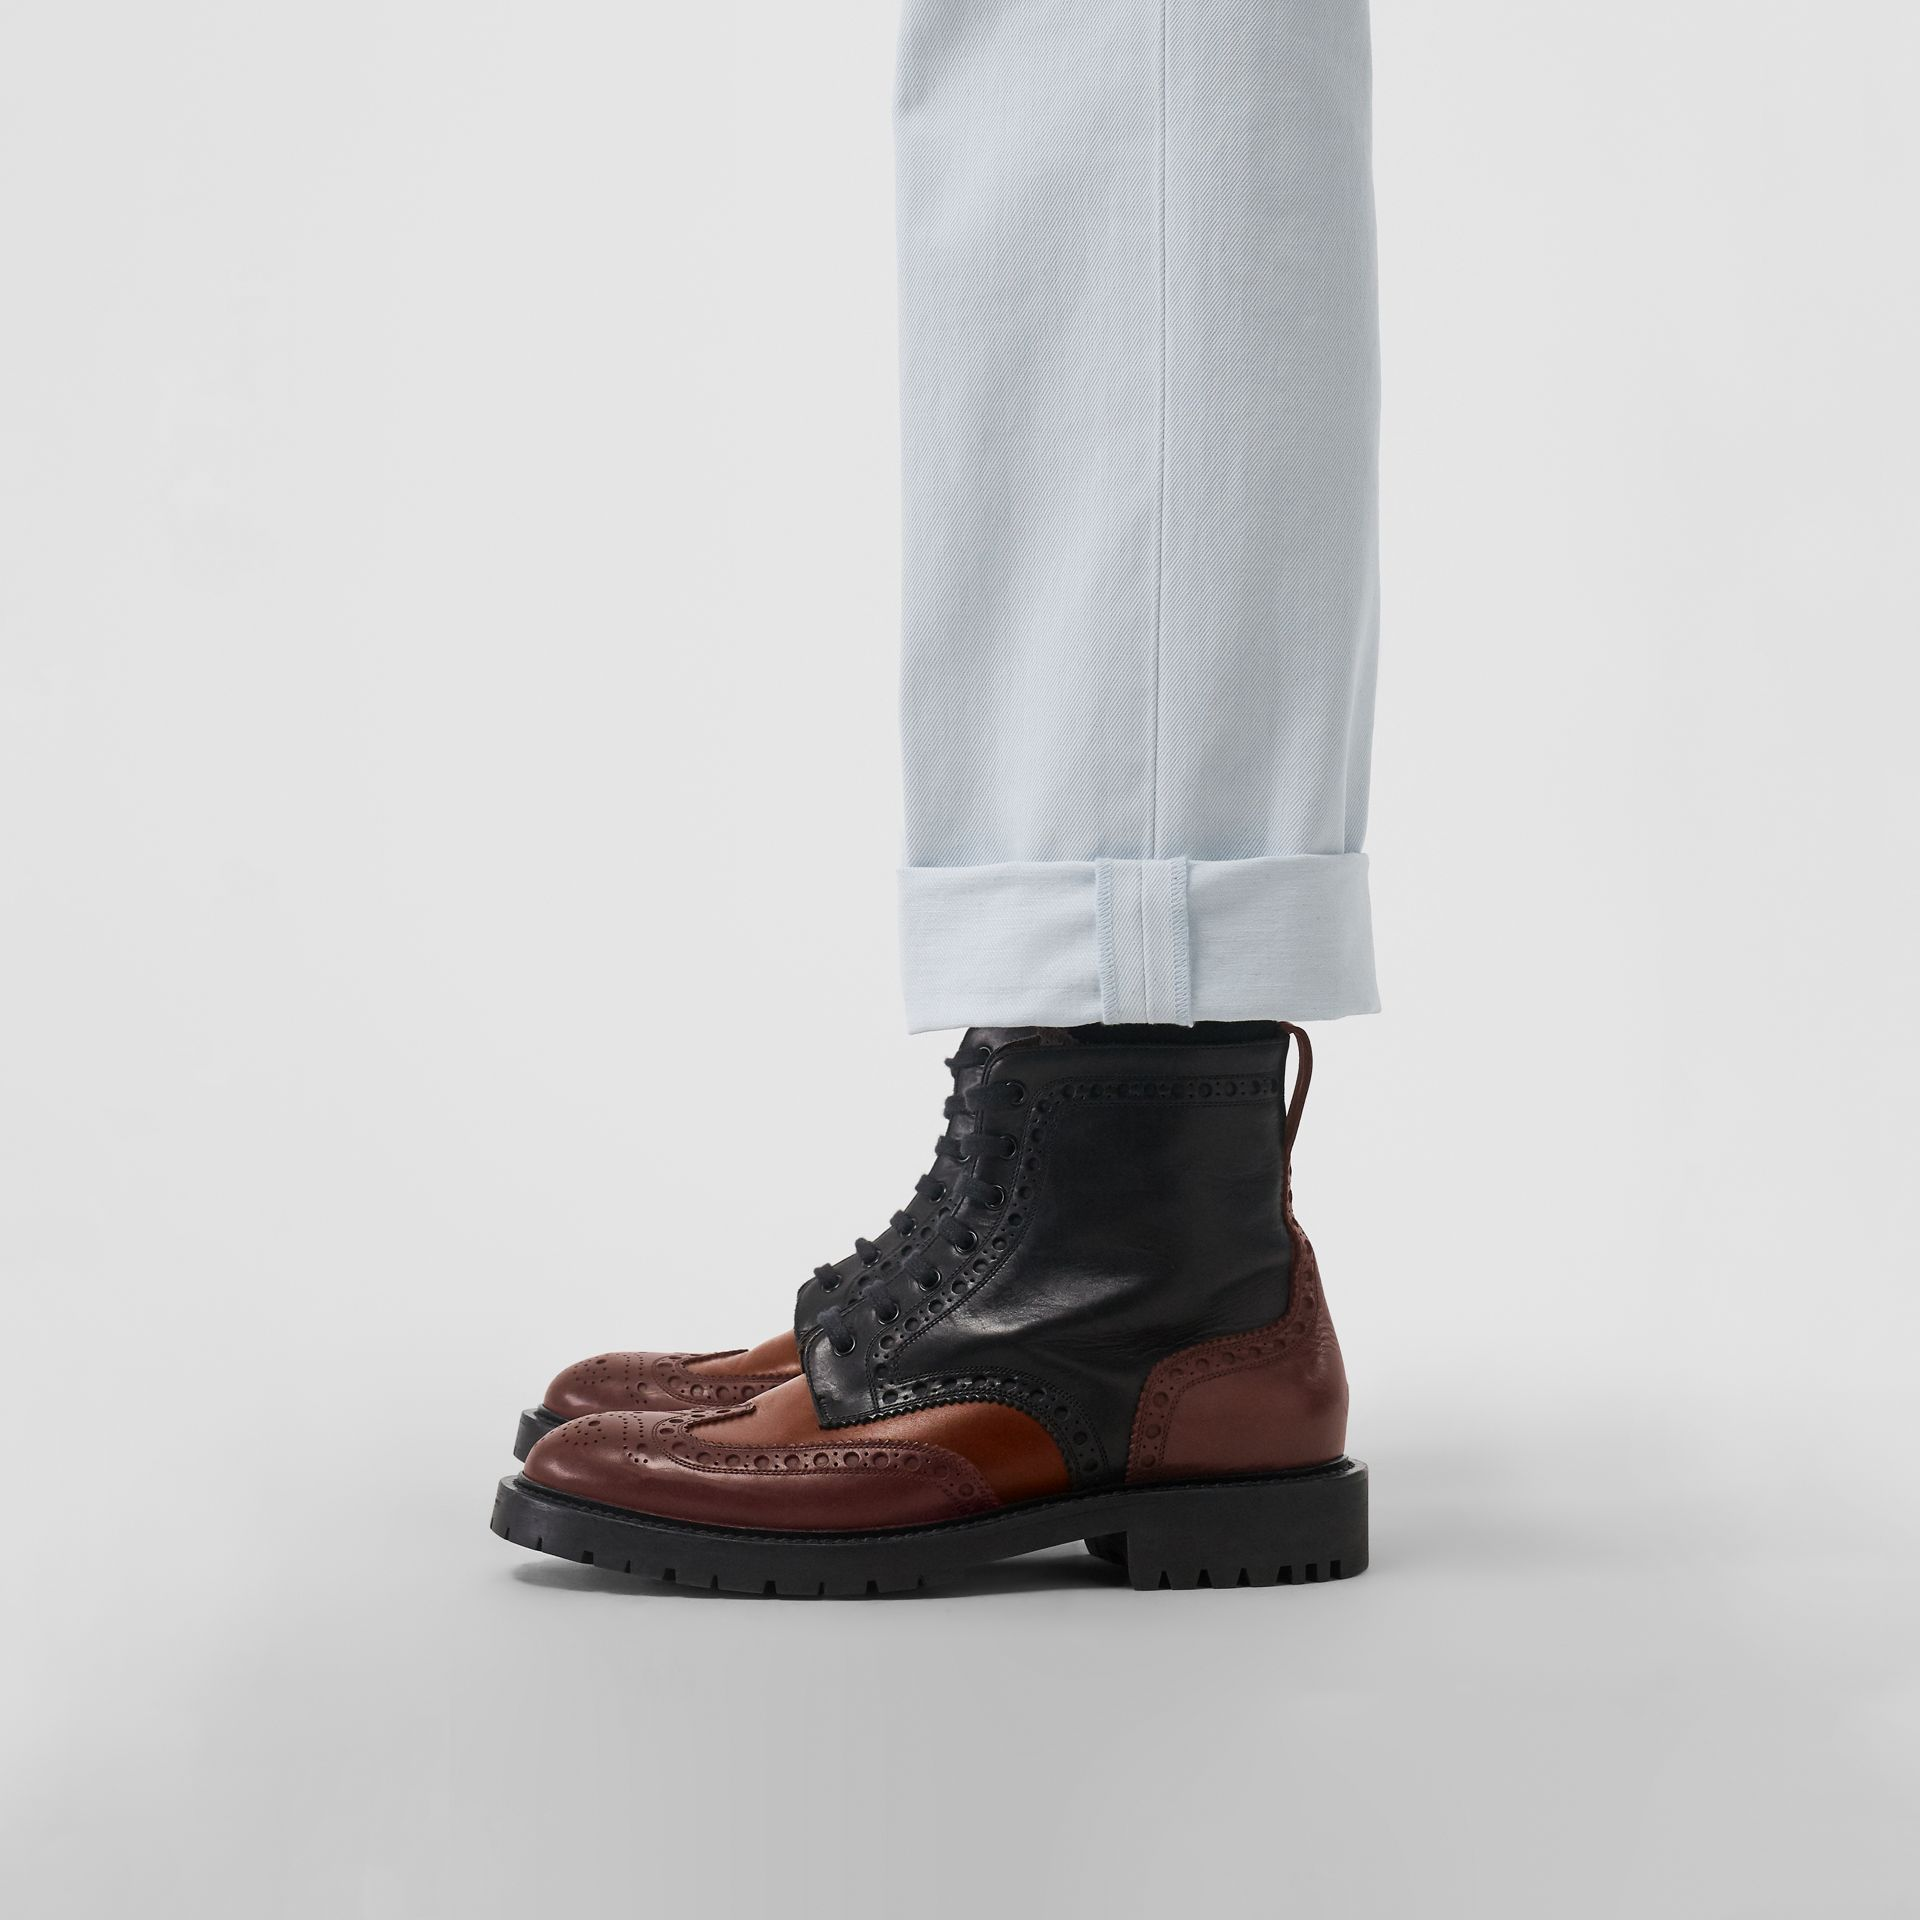 Brogue Detail Leather Boots in Black/garnet - Men | Burberry United States - gallery image 2